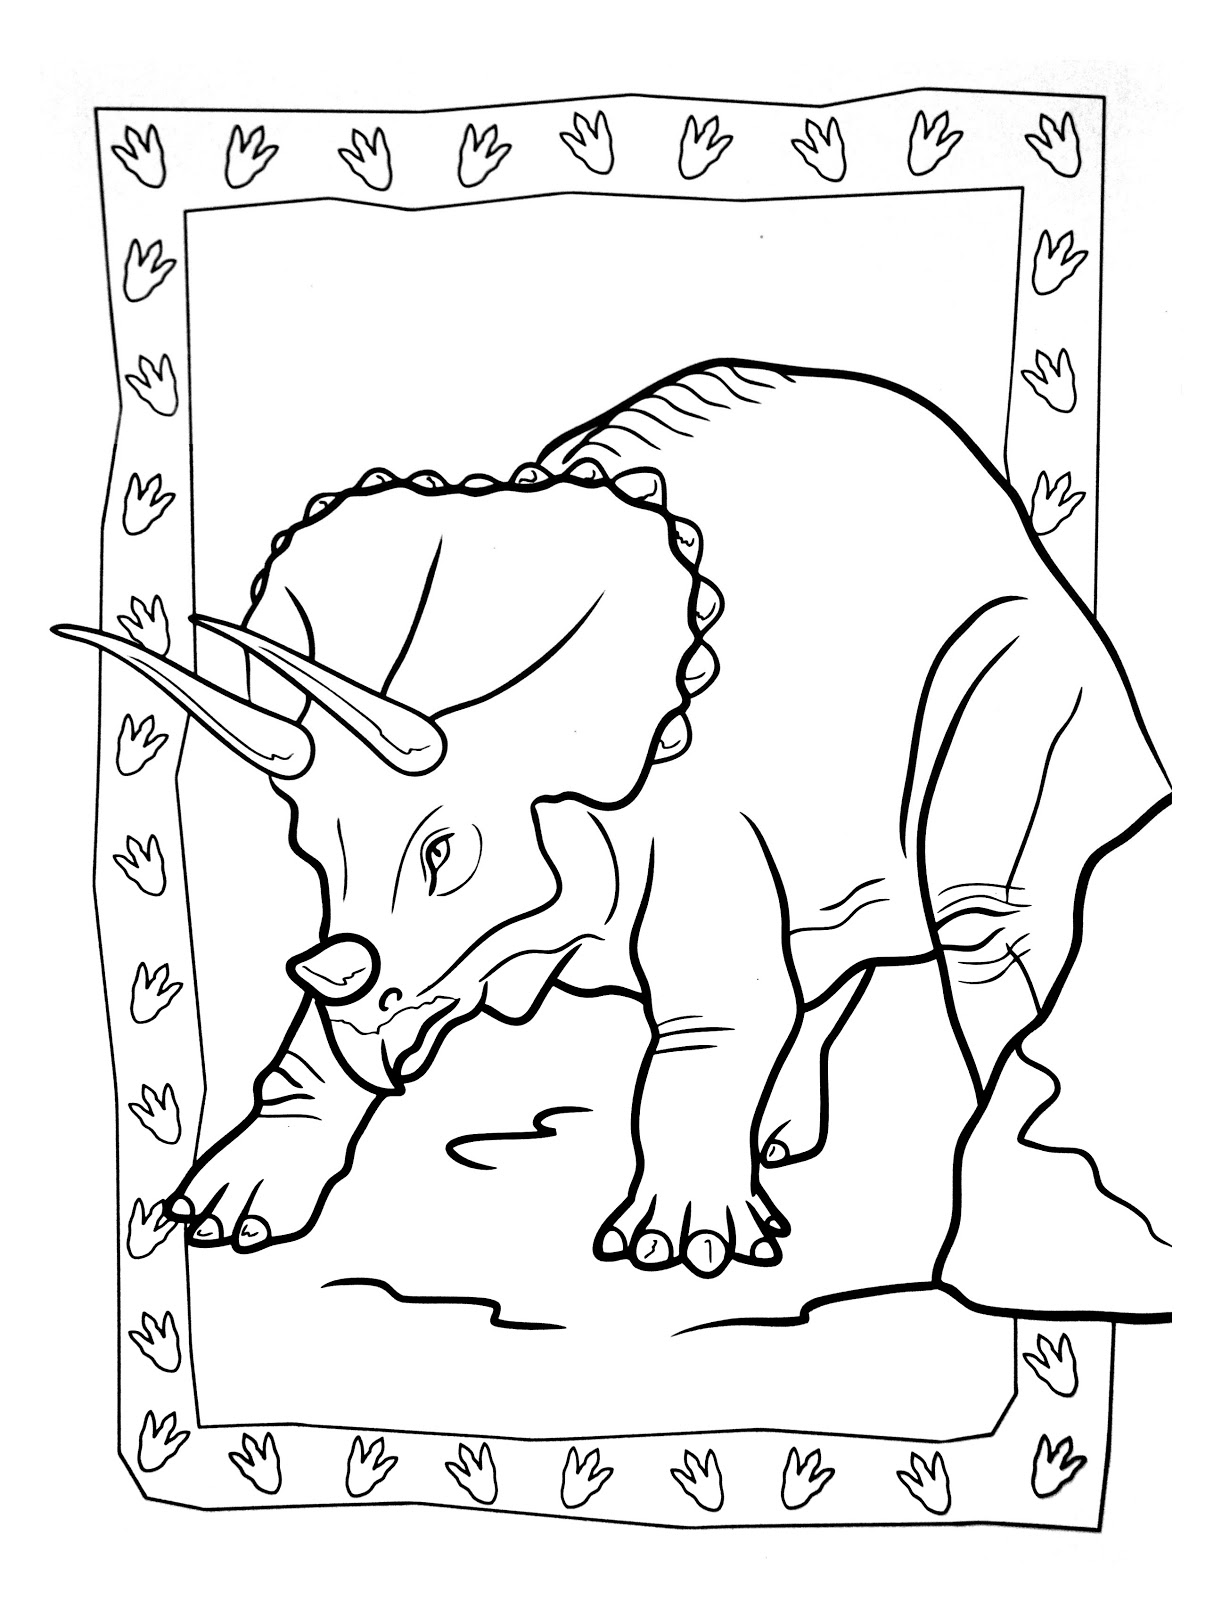 Dinosaurs coloring pages 43